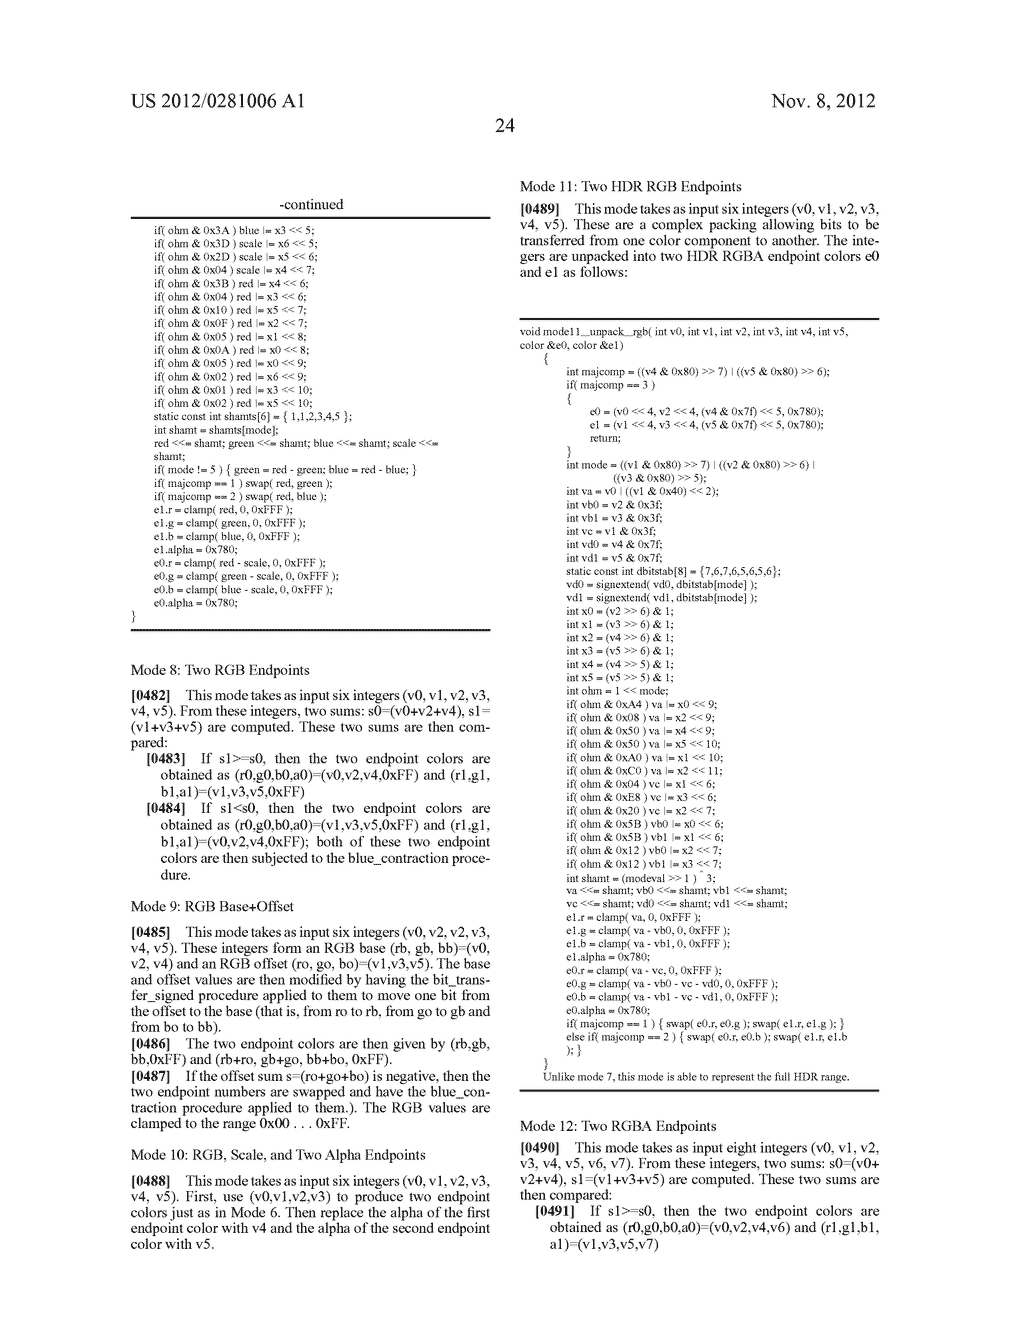 Method Of And Apparatus For Encoding And Decoding Data - diagram, schematic, and image 36